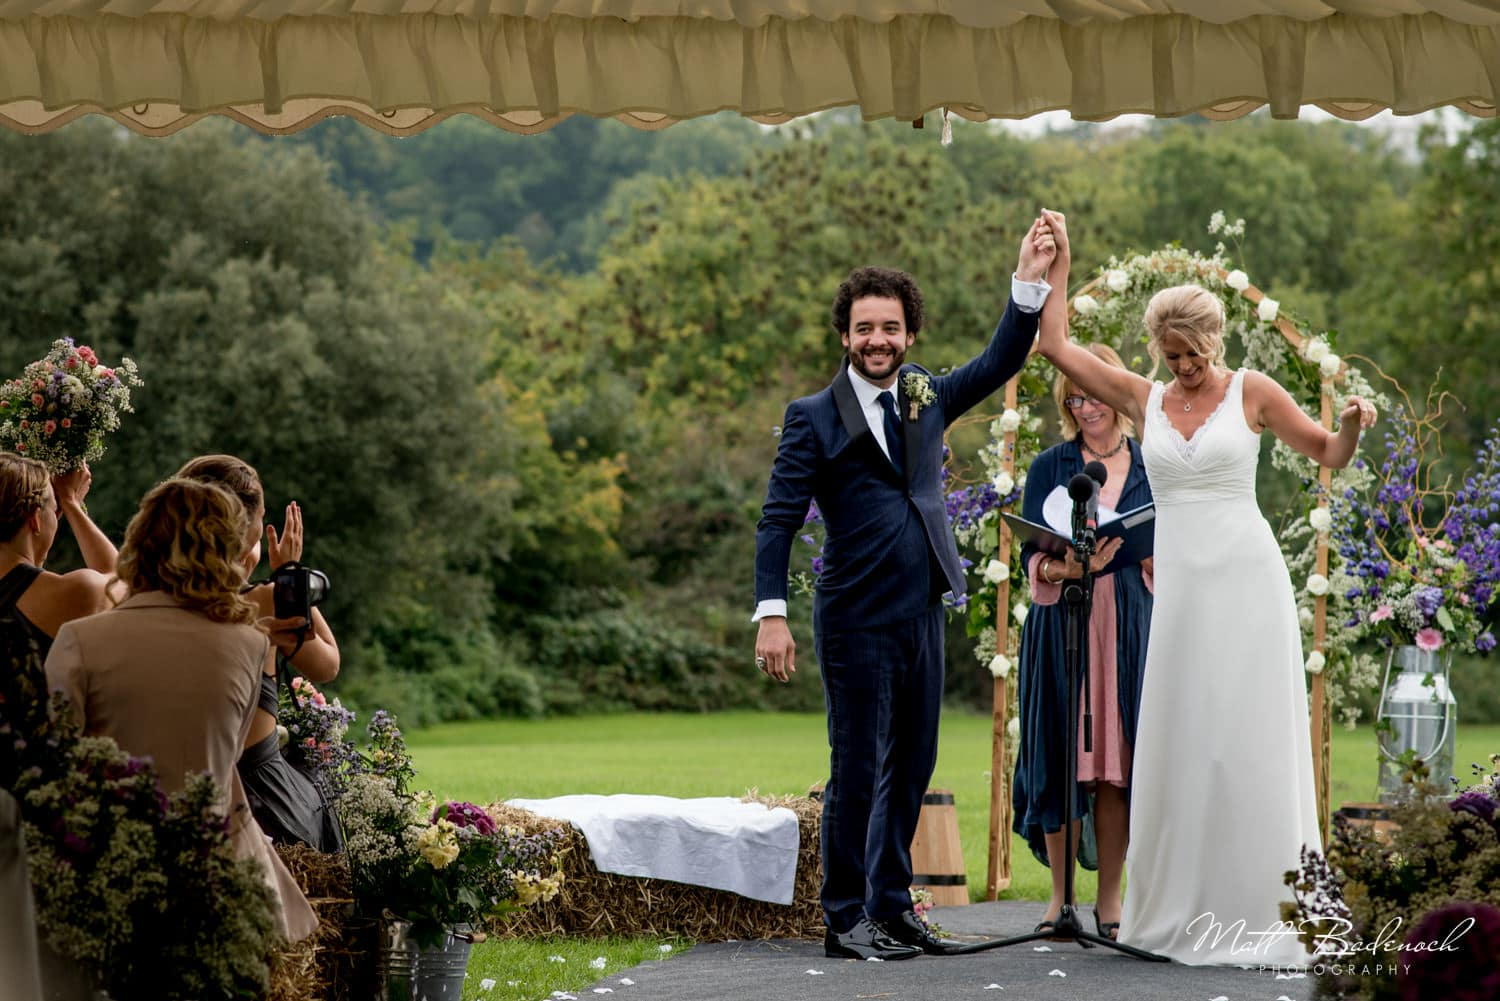 Bride and groom celebrating at their Wookey Hole Wedding Ceremony